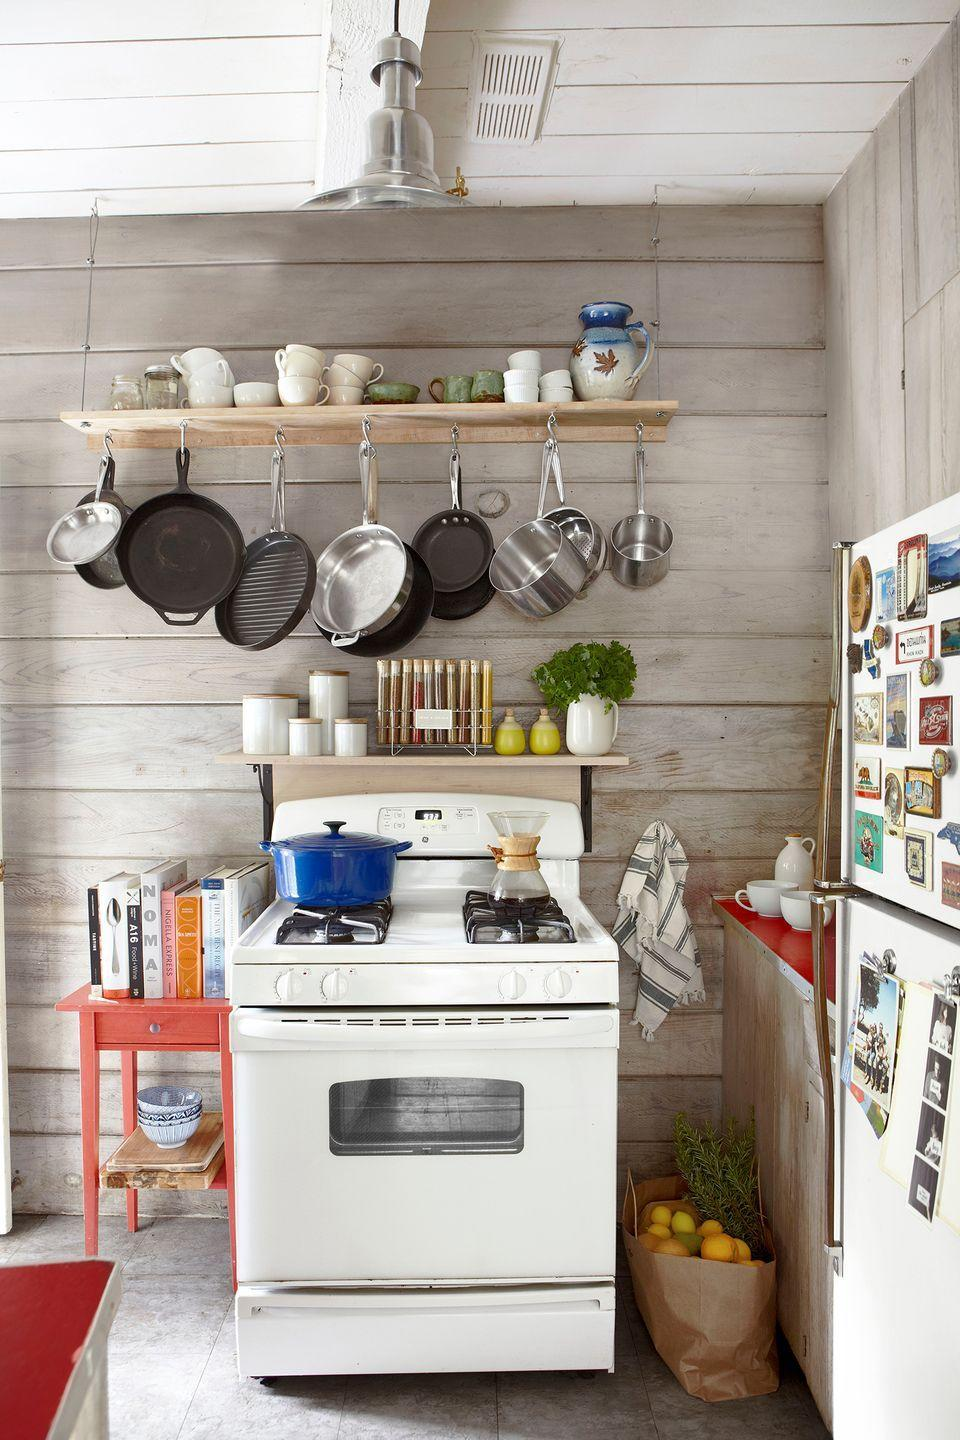 <p>Light-colored wood panels give this retro-style kitchen a cocoon-like feel.</p>